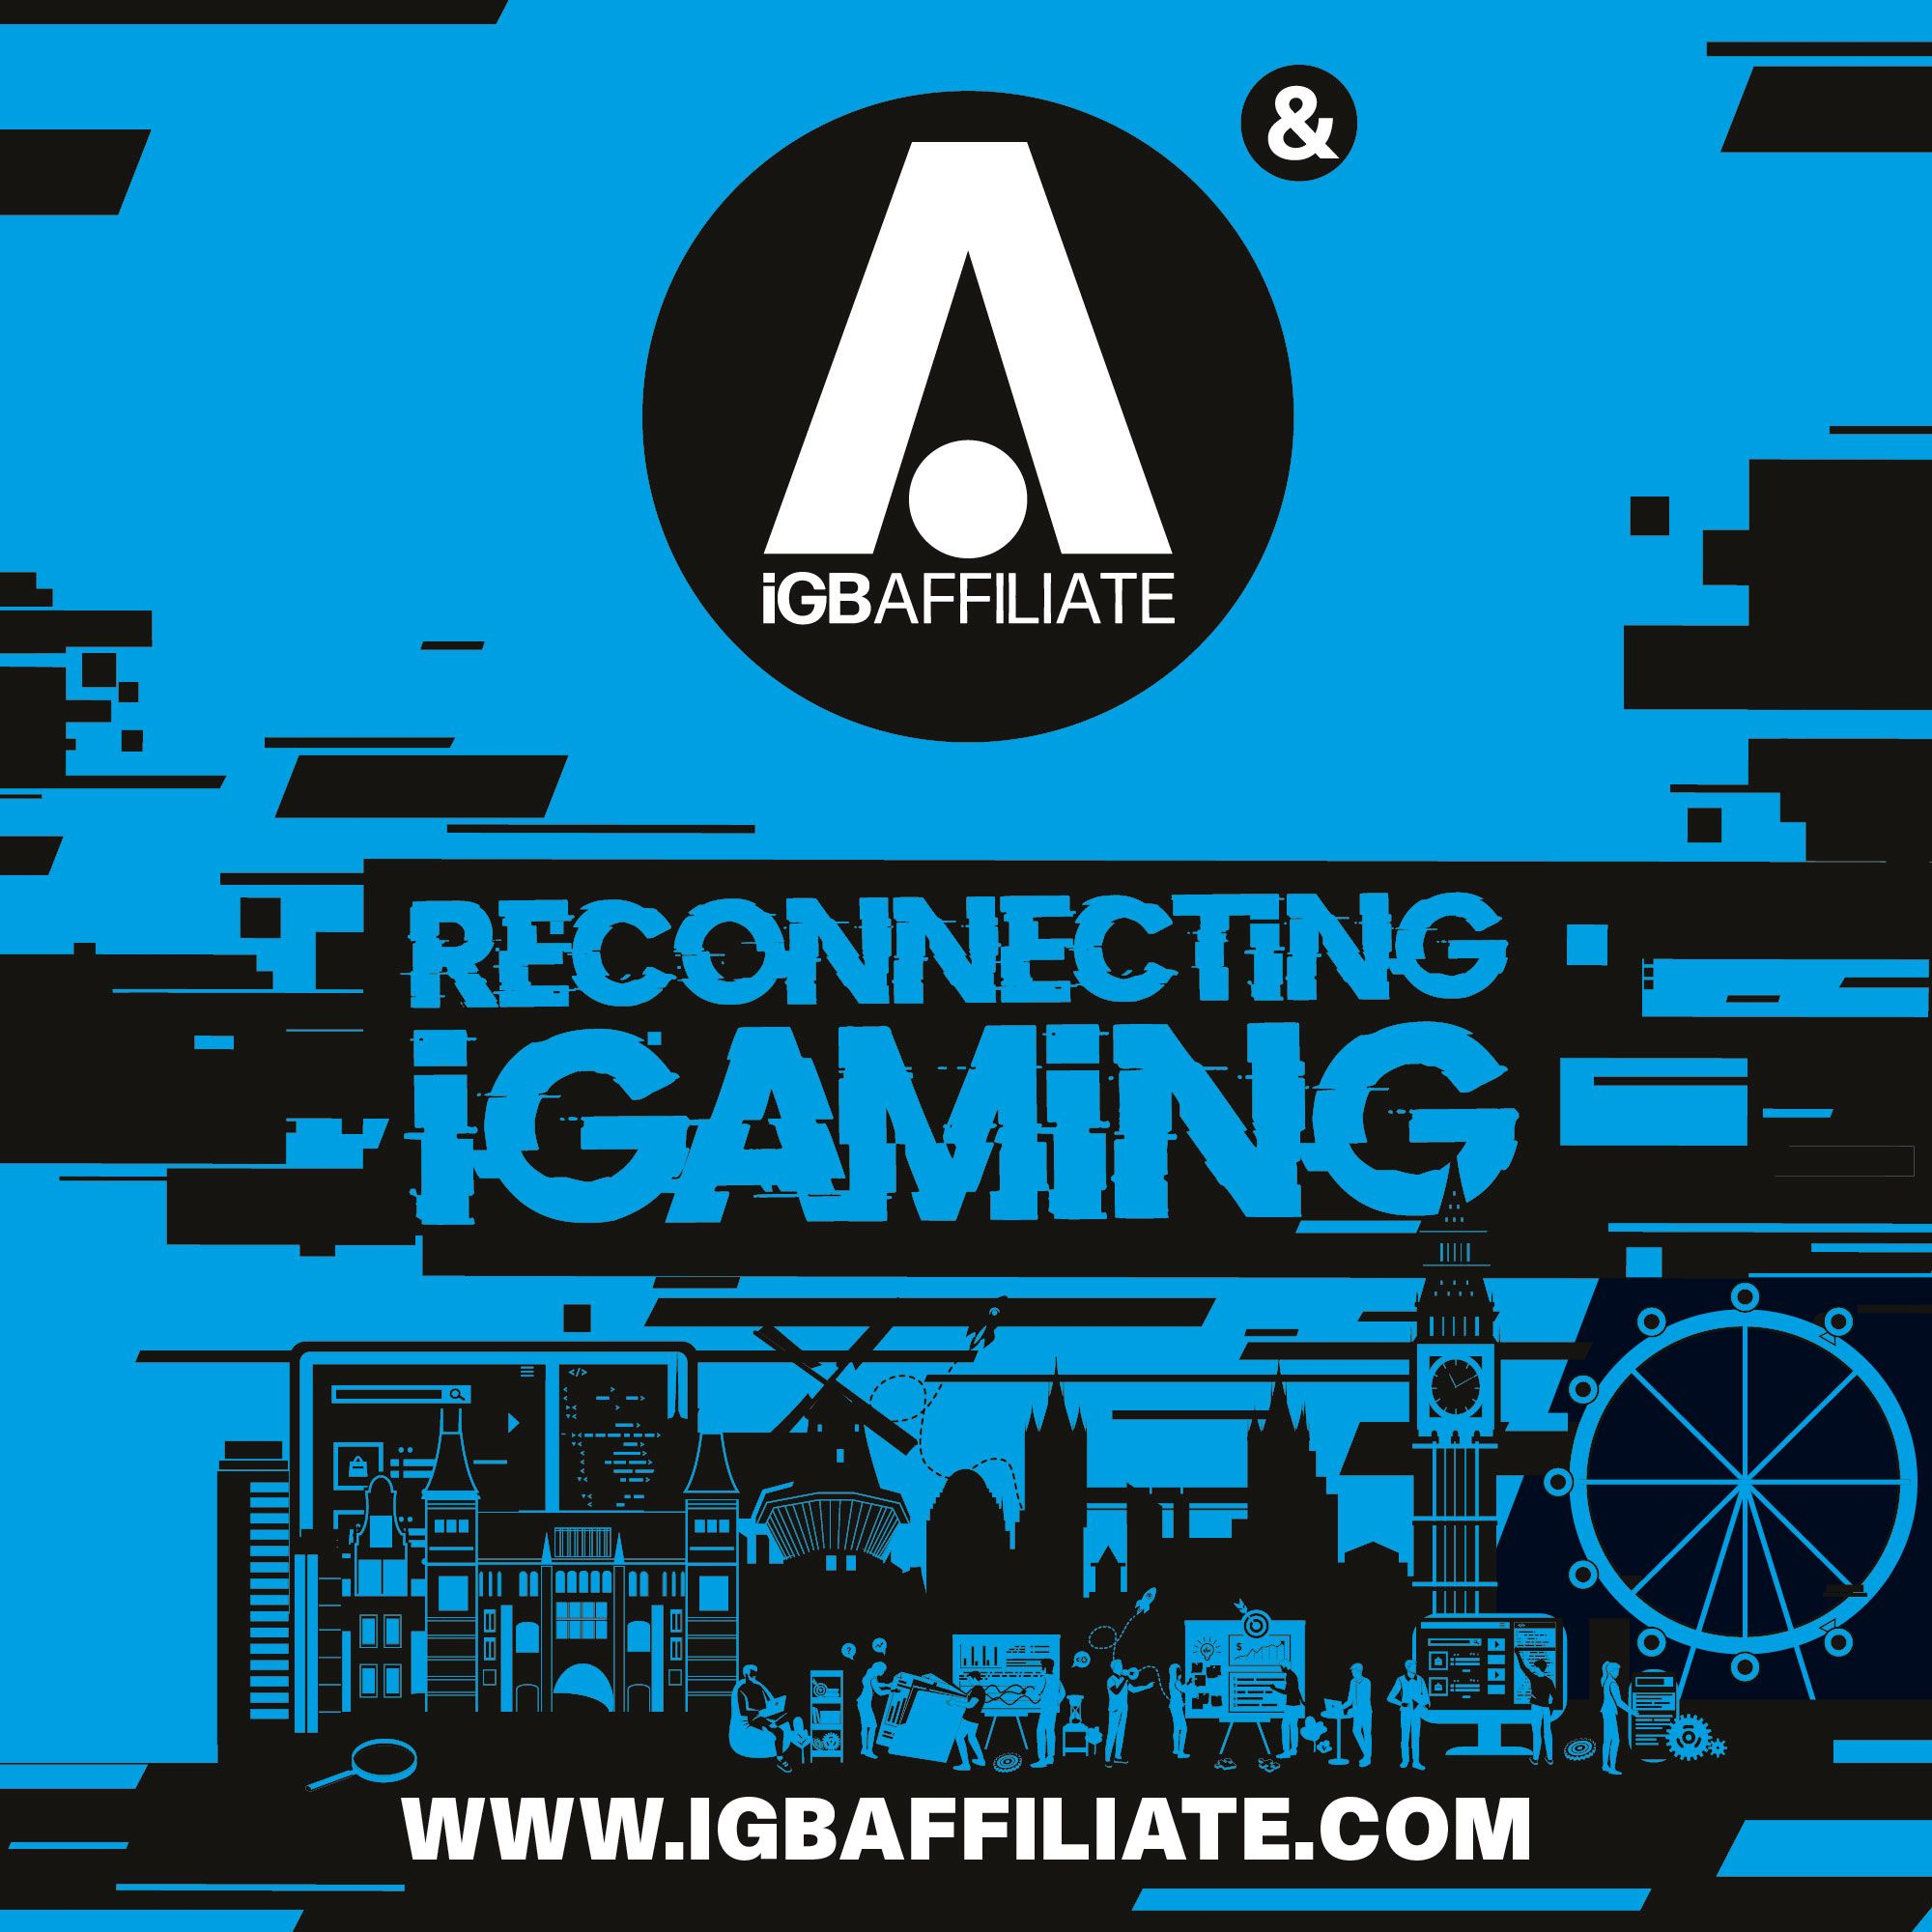 reconnecting igaming